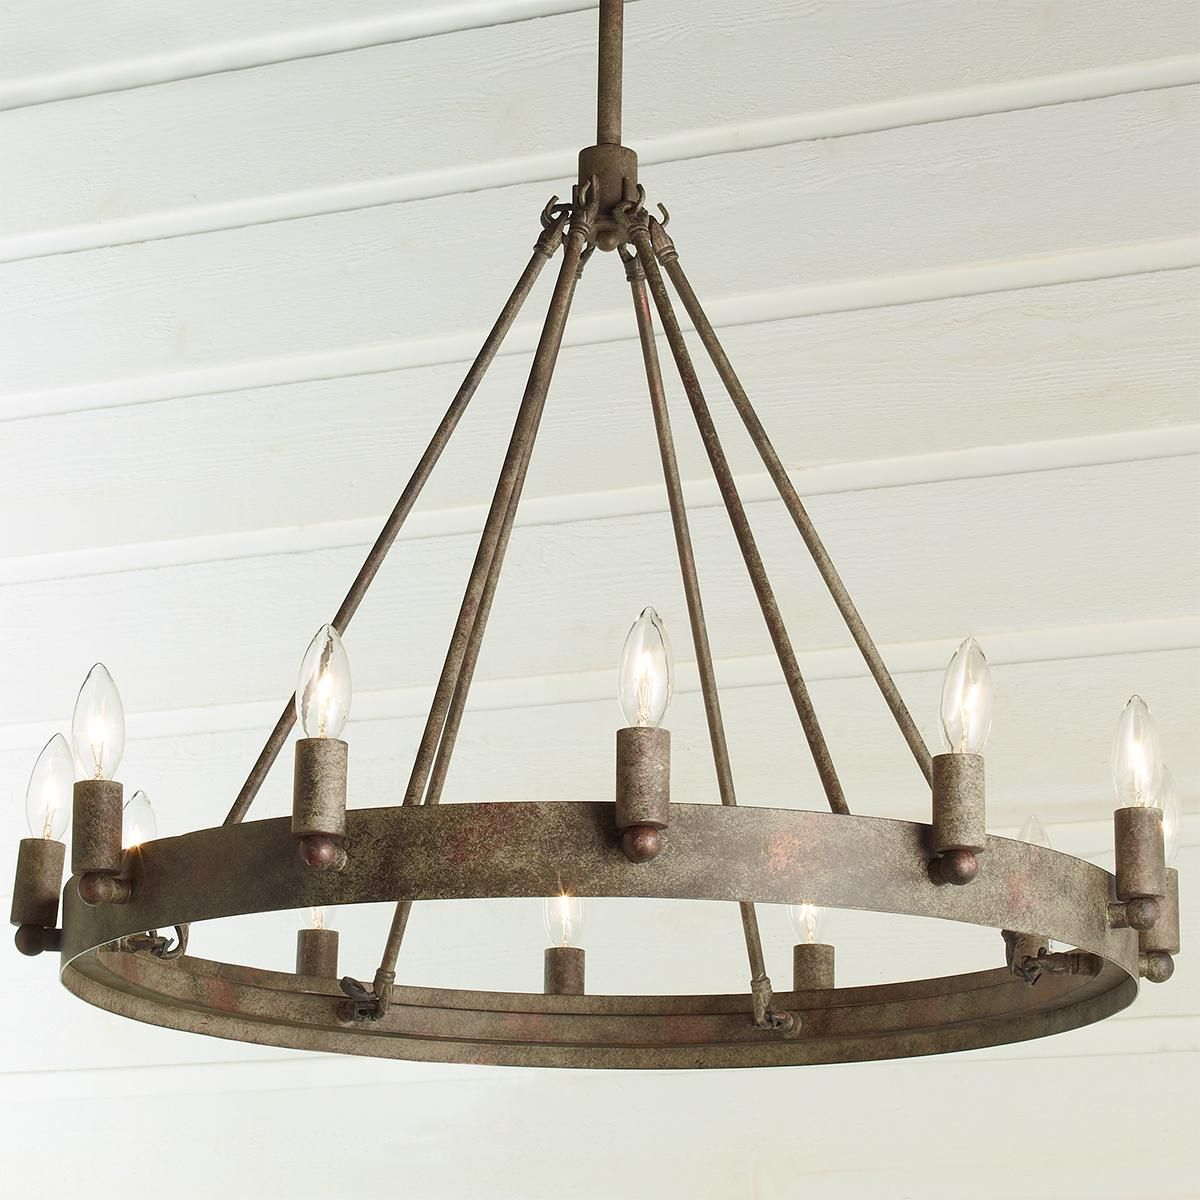 Urban Loft Industrial Circular Chandelier 12 Light Circular Chandelier Family Room Lighting Urban Industrial Decor